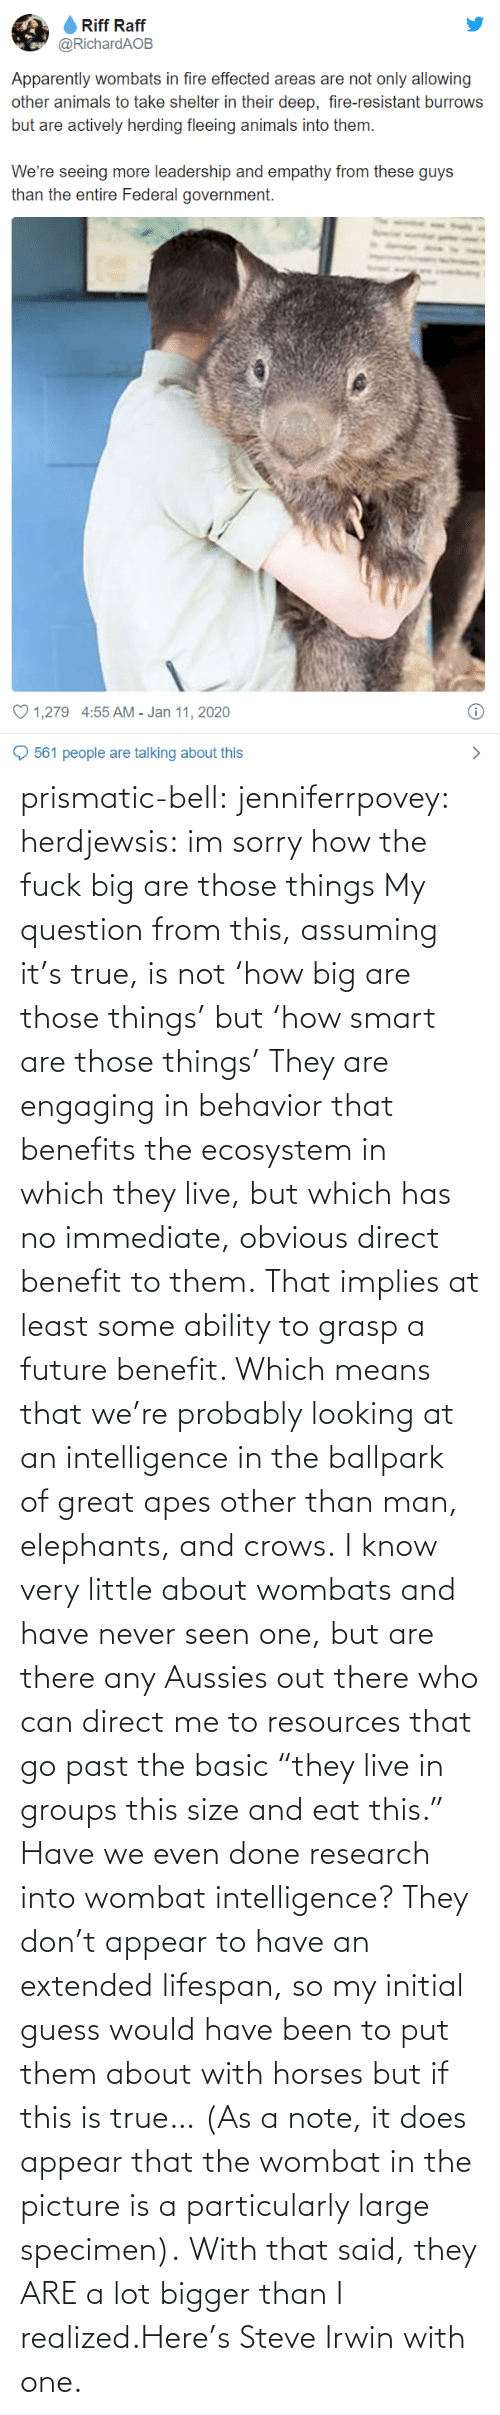 "True: prismatic-bell:  jenniferrpovey: herdjewsis: im sorry how the fuck big are those things My question from this, assuming it's true, is not 'how big are those things' but 'how smart are those things' They are engaging in behavior that benefits the ecosystem in which they live, but which has no immediate, obvious direct benefit to them. That implies at least some ability to grasp a future benefit. Which means that we're probably looking at an intelligence in the ballpark of great apes other than man, elephants, and crows. I know very little about wombats and have never seen one, but are there any Aussies out there who can direct me to resources that go past the basic ""they live in groups this size and eat this."" Have we even done research into wombat intelligence? They don't appear to have an extended lifespan, so my initial guess would have been to put them about with horses but if this is true… (As a note, it does appear that the wombat in the picture is a particularly large specimen).  With that said, they ARE a lot bigger than I realized.Here's Steve Irwin with one."